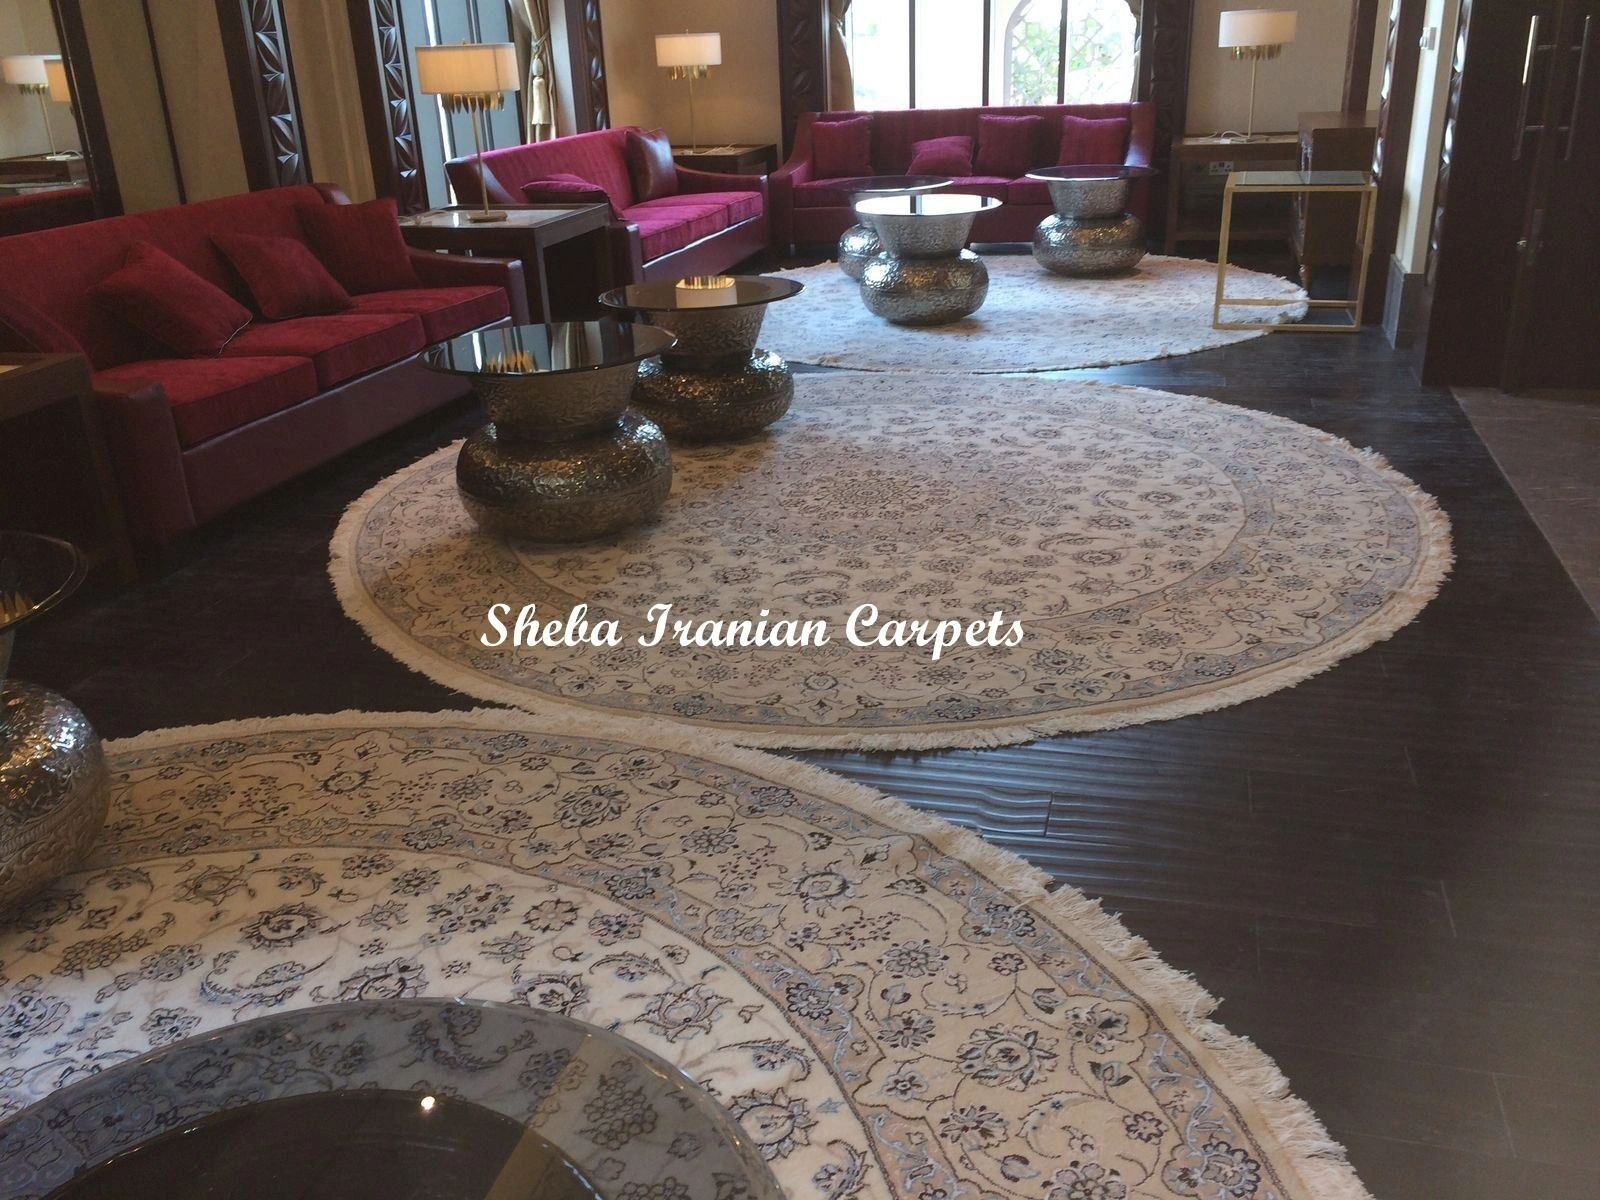 Round carpets collection at Sheba Iranian Carpets Stores.